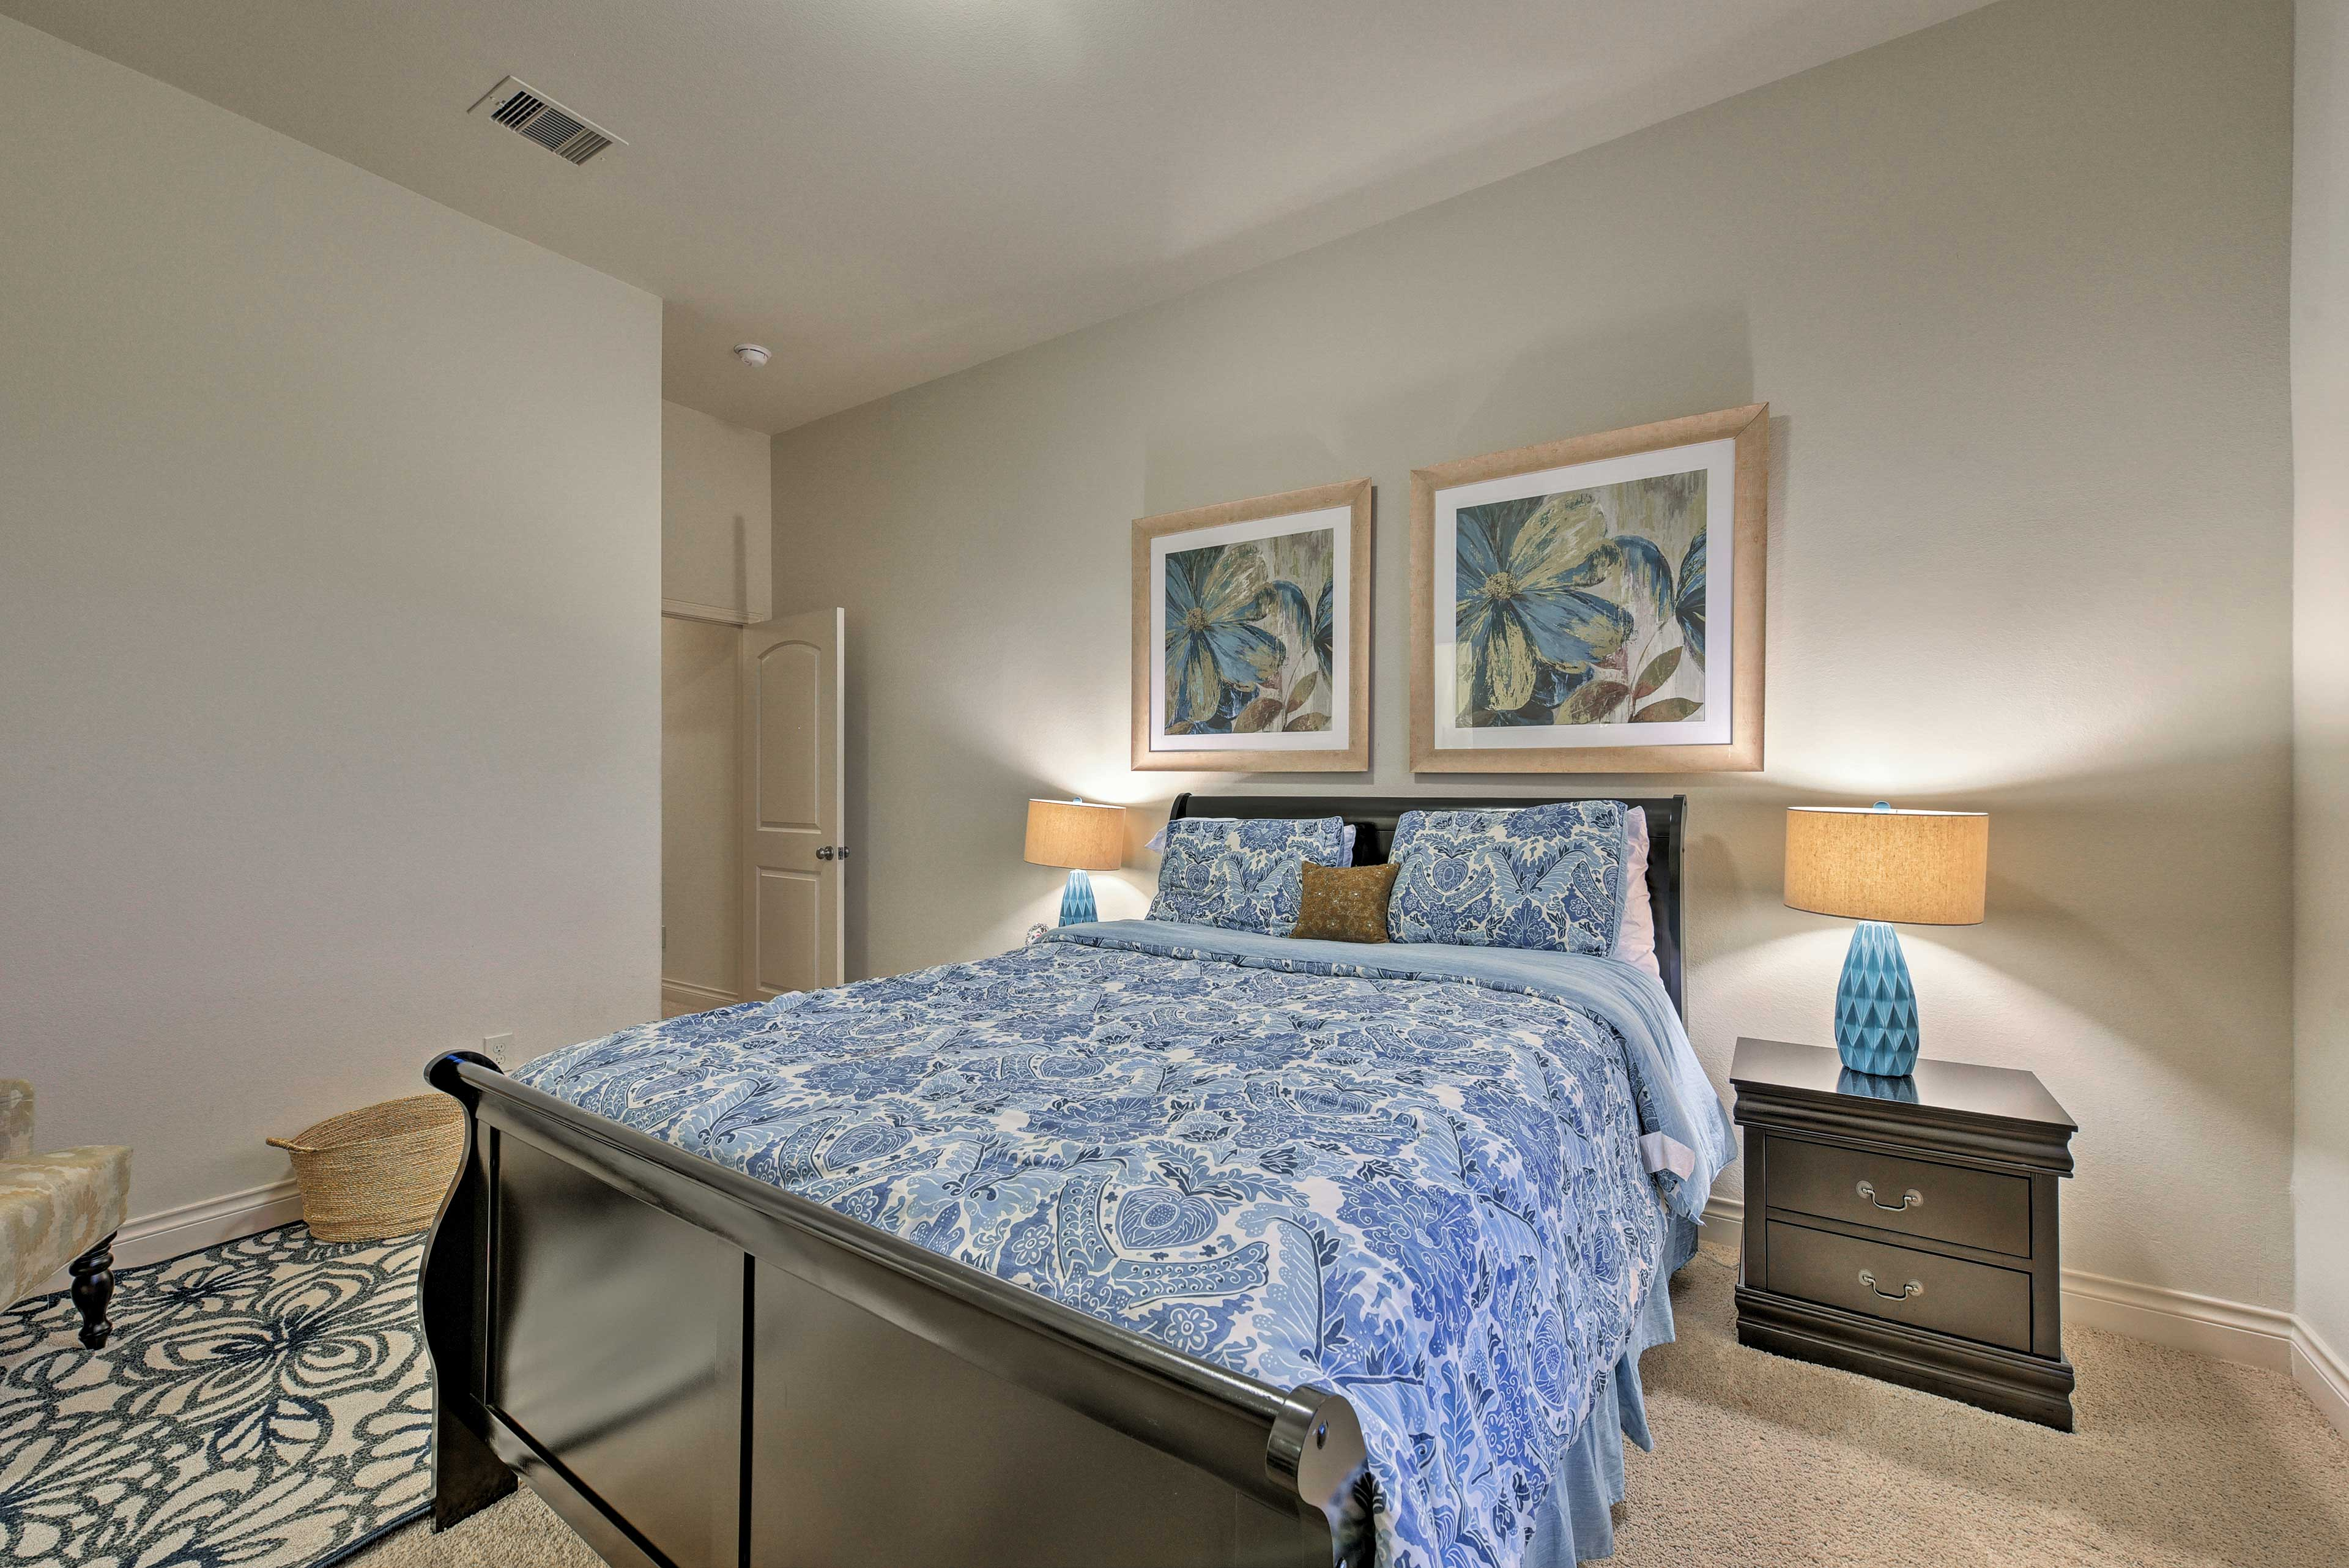 A beautiful blue comforter highlights this bedroom.